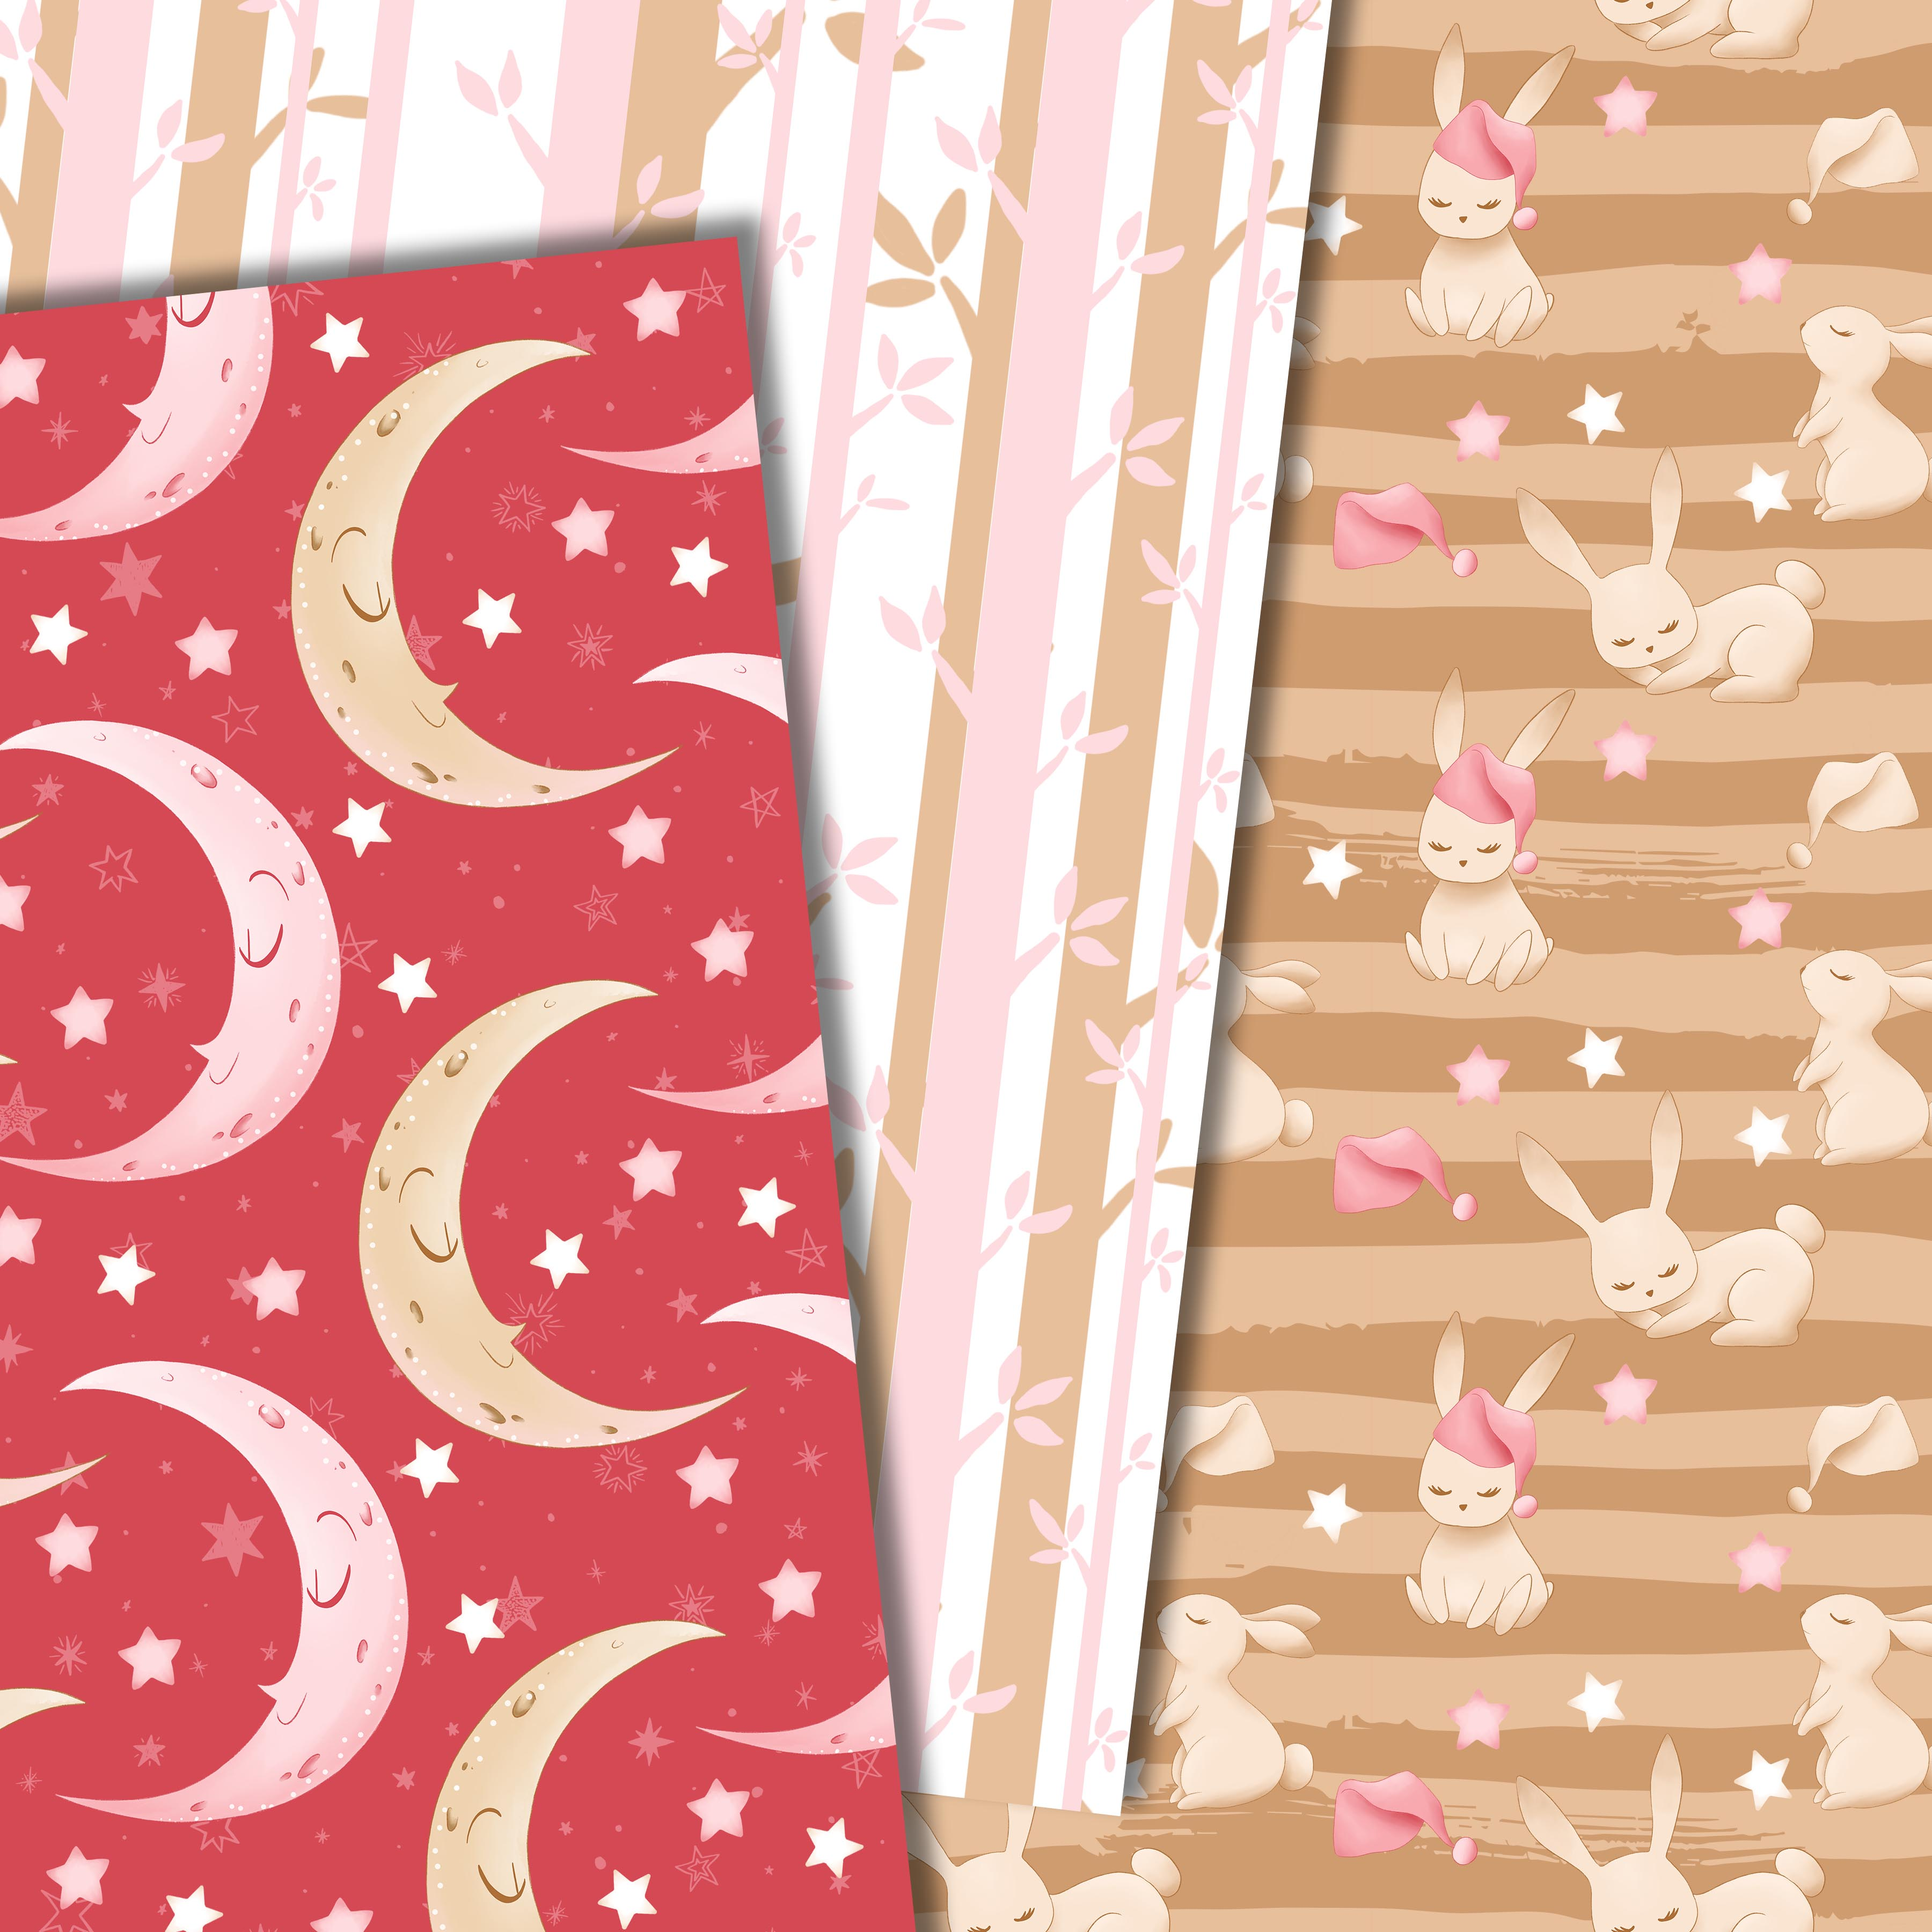 Good night bunny pattern in pink example image 2